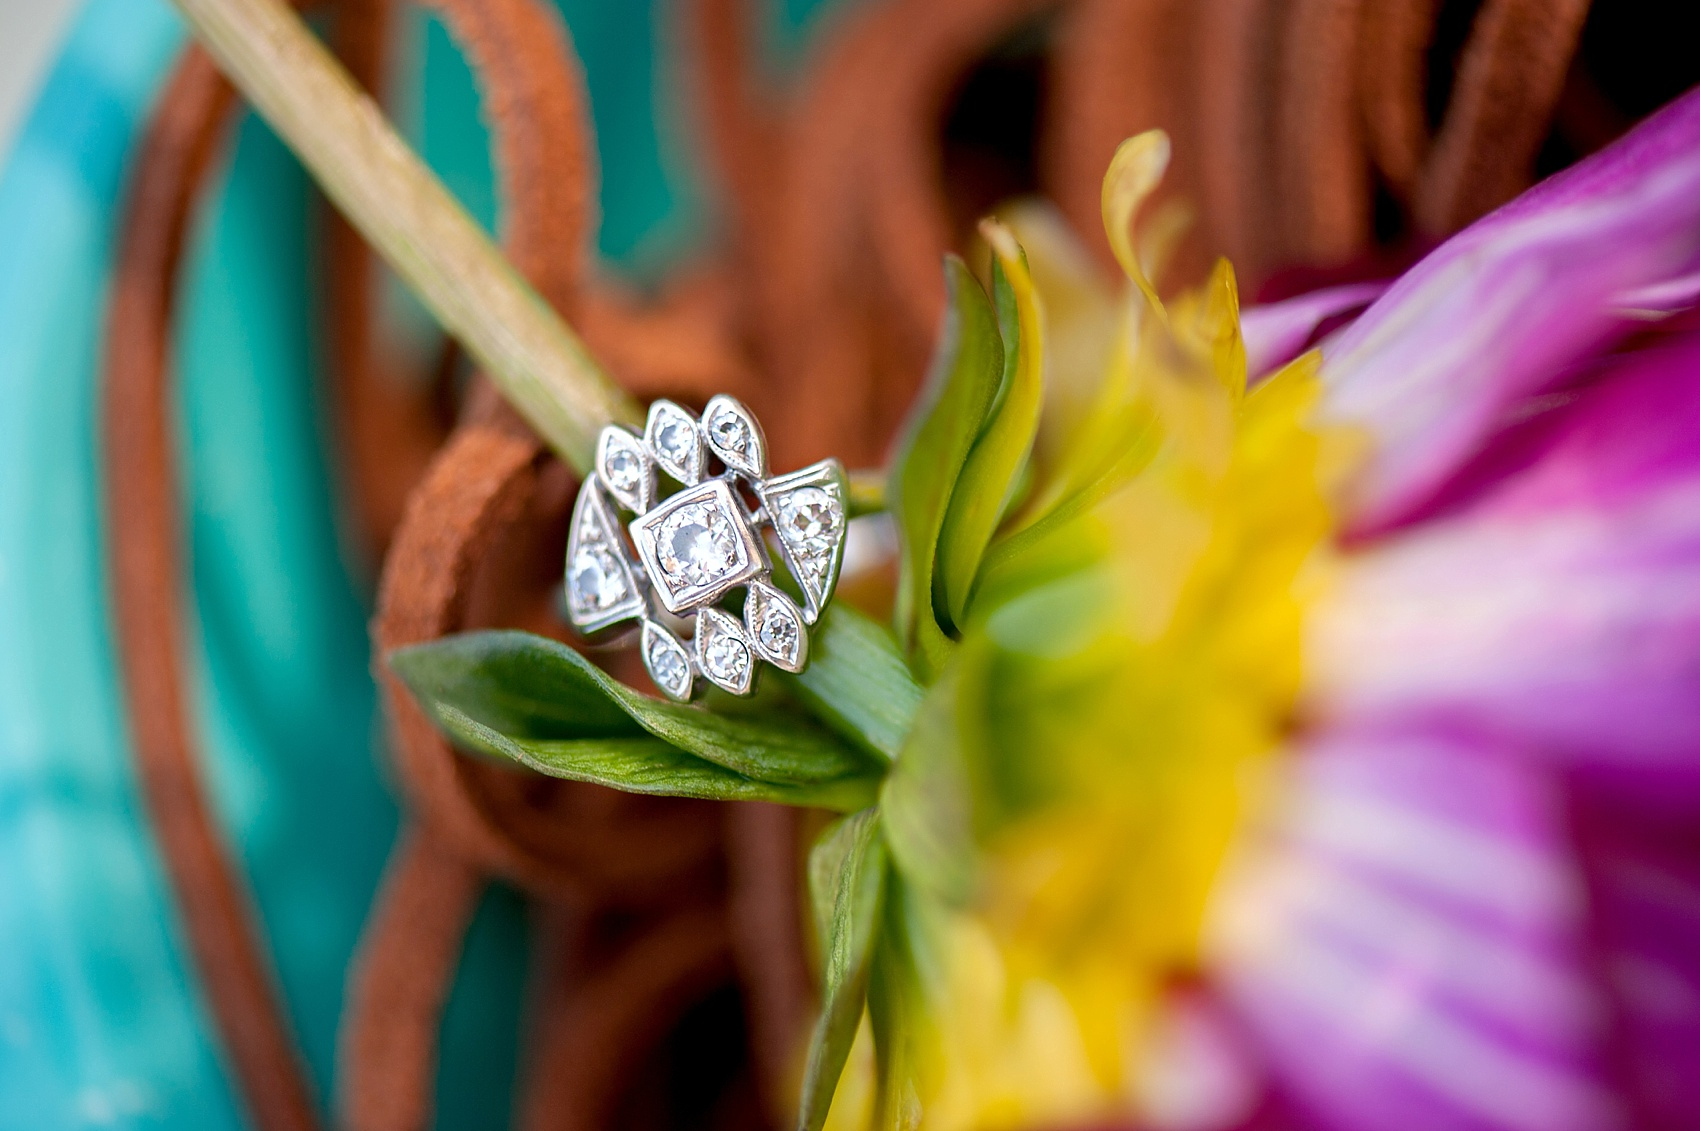 Raleigh wedding photographer's personal story of the art deco diamond ring she wears daily, which was her grand grandmother's.